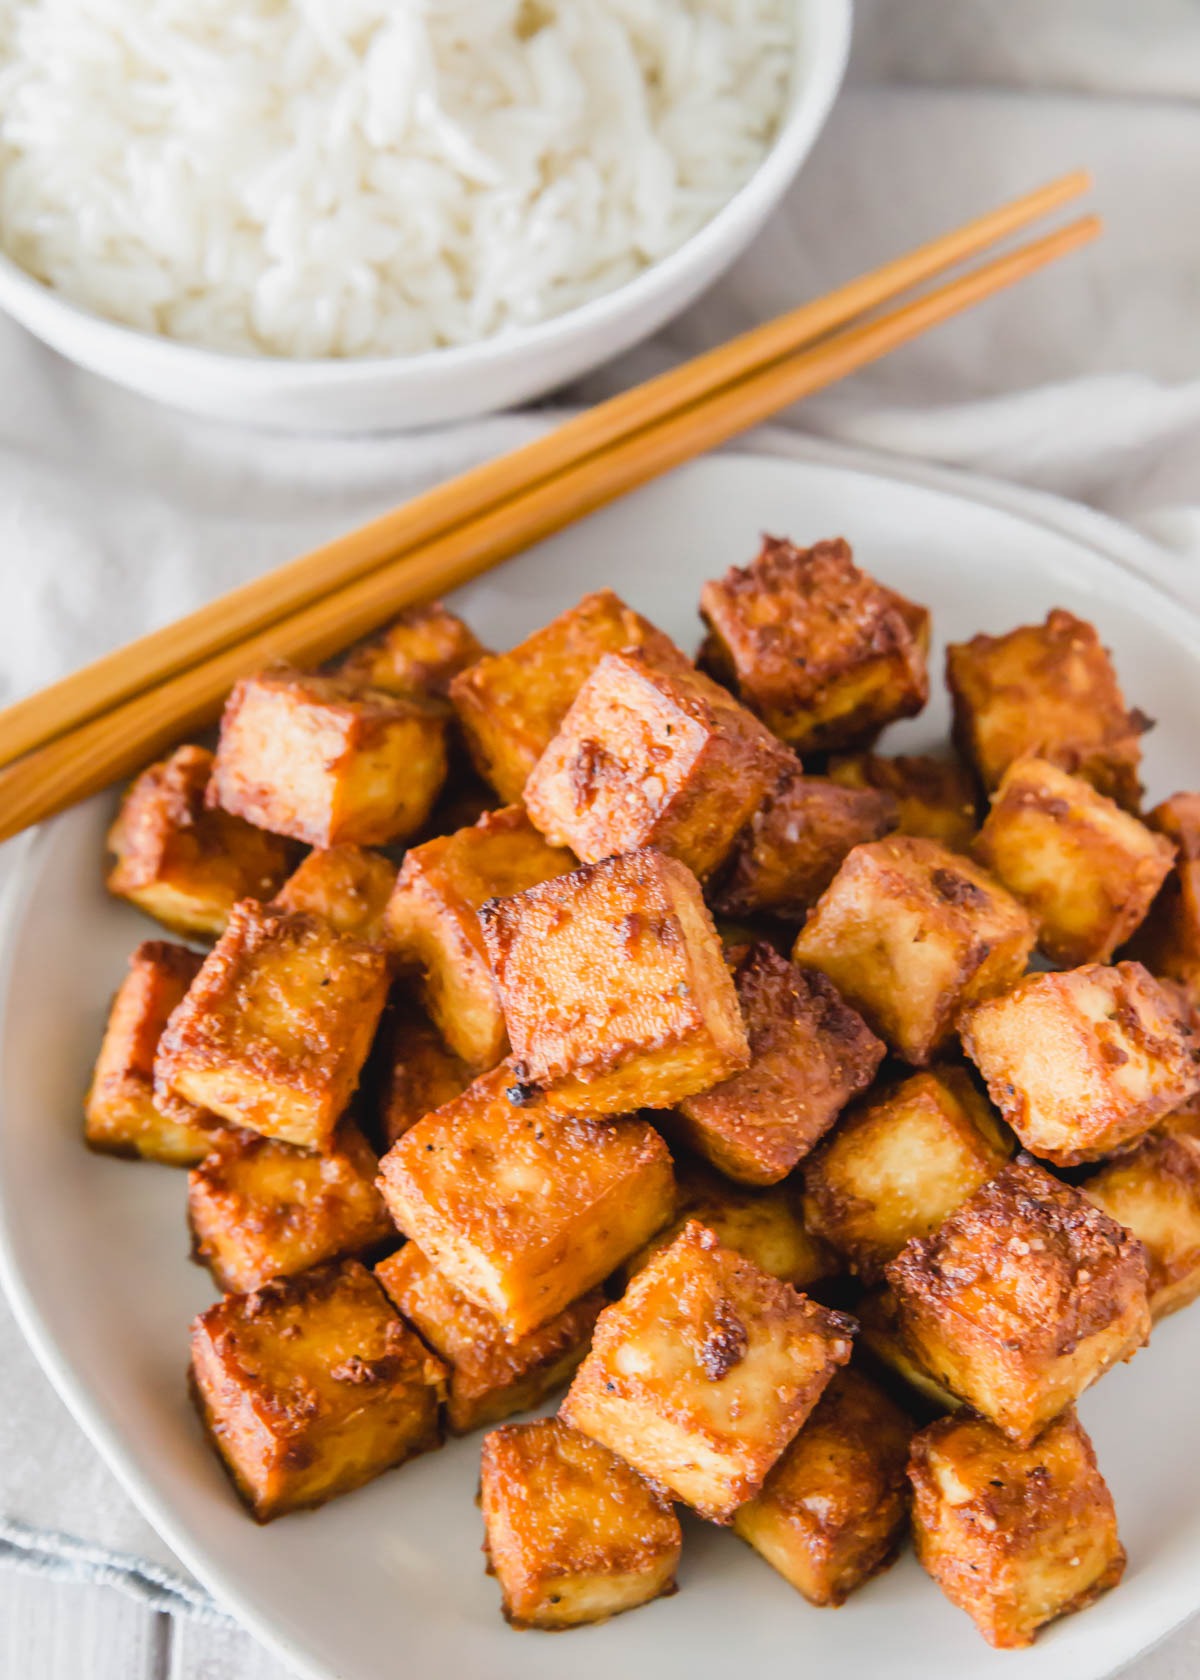 This air fryer tofu recipe is extra crispy and full of flavor using just a handful of ingredients. Making tofu in the air fryer will be your new favorite method once you try this easy recipe.